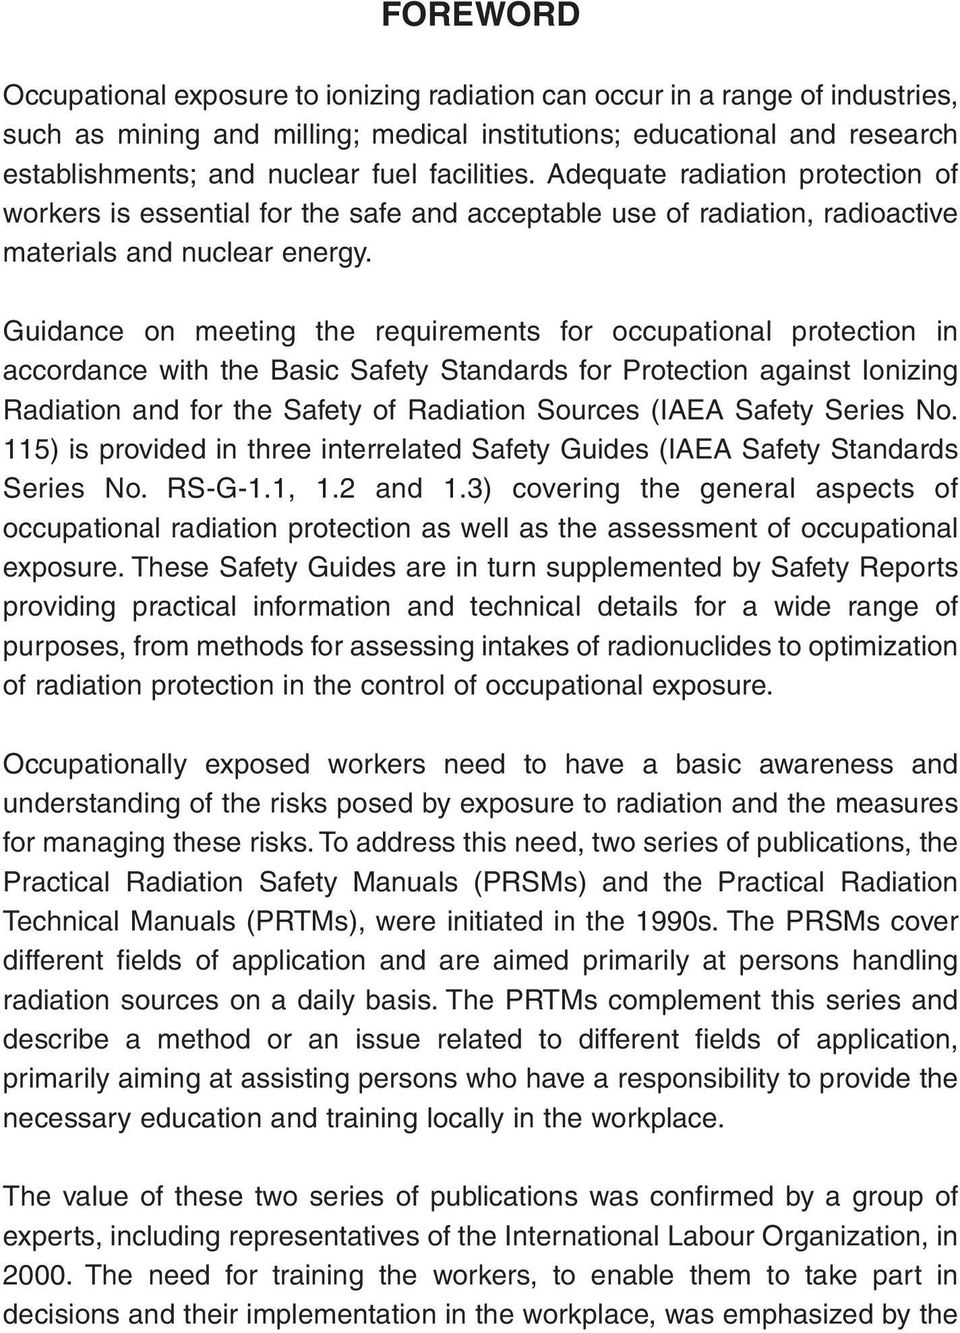 Guidance on meeting the requirements for occupational protection in accordance with the Basic Safety Standards for Protection against Ionizing Radiation and for the Safety of Radiation Sources (IAEA